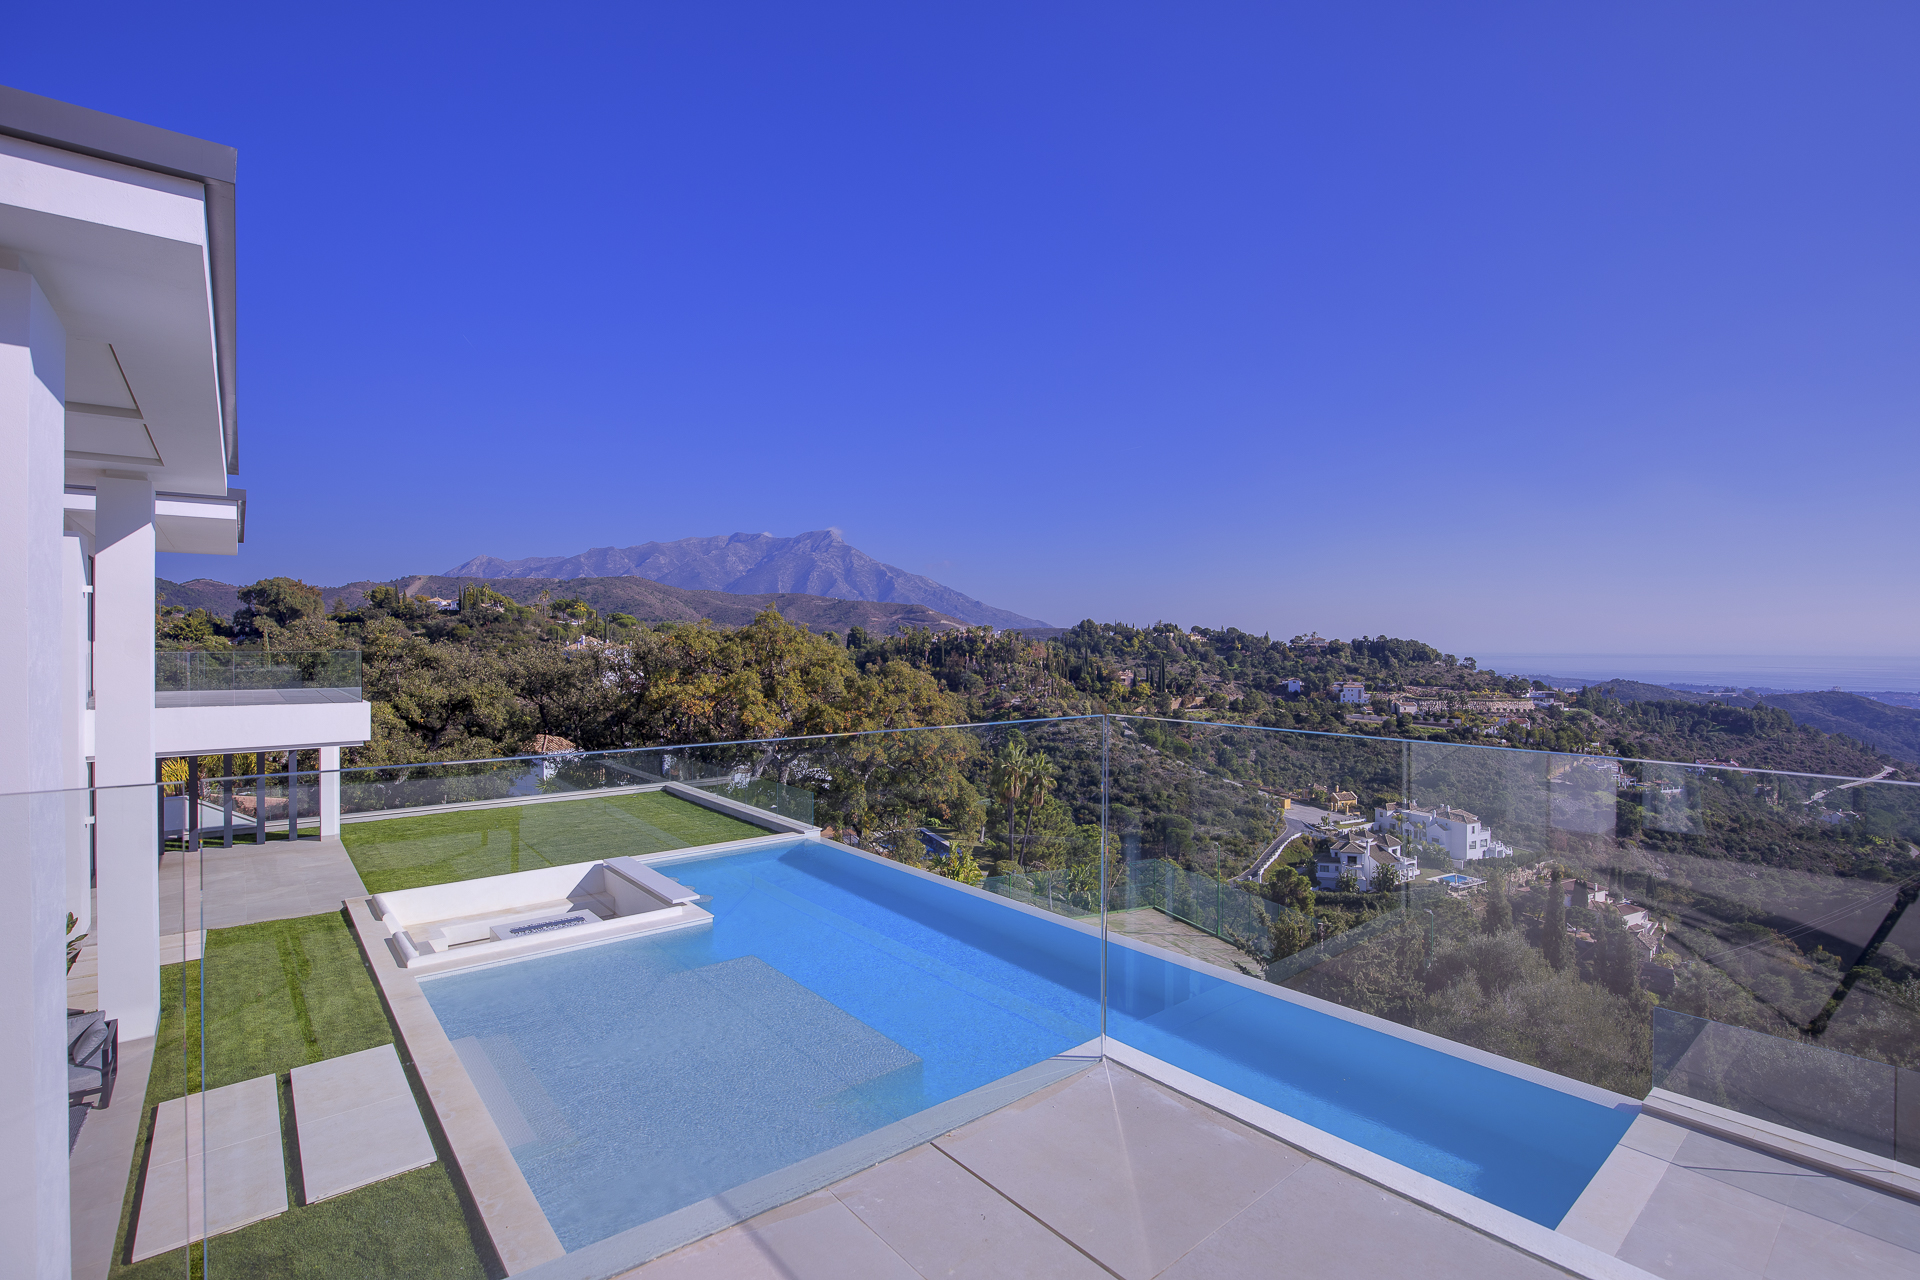 Exquisite newly built villa in the gated community of El Madronal